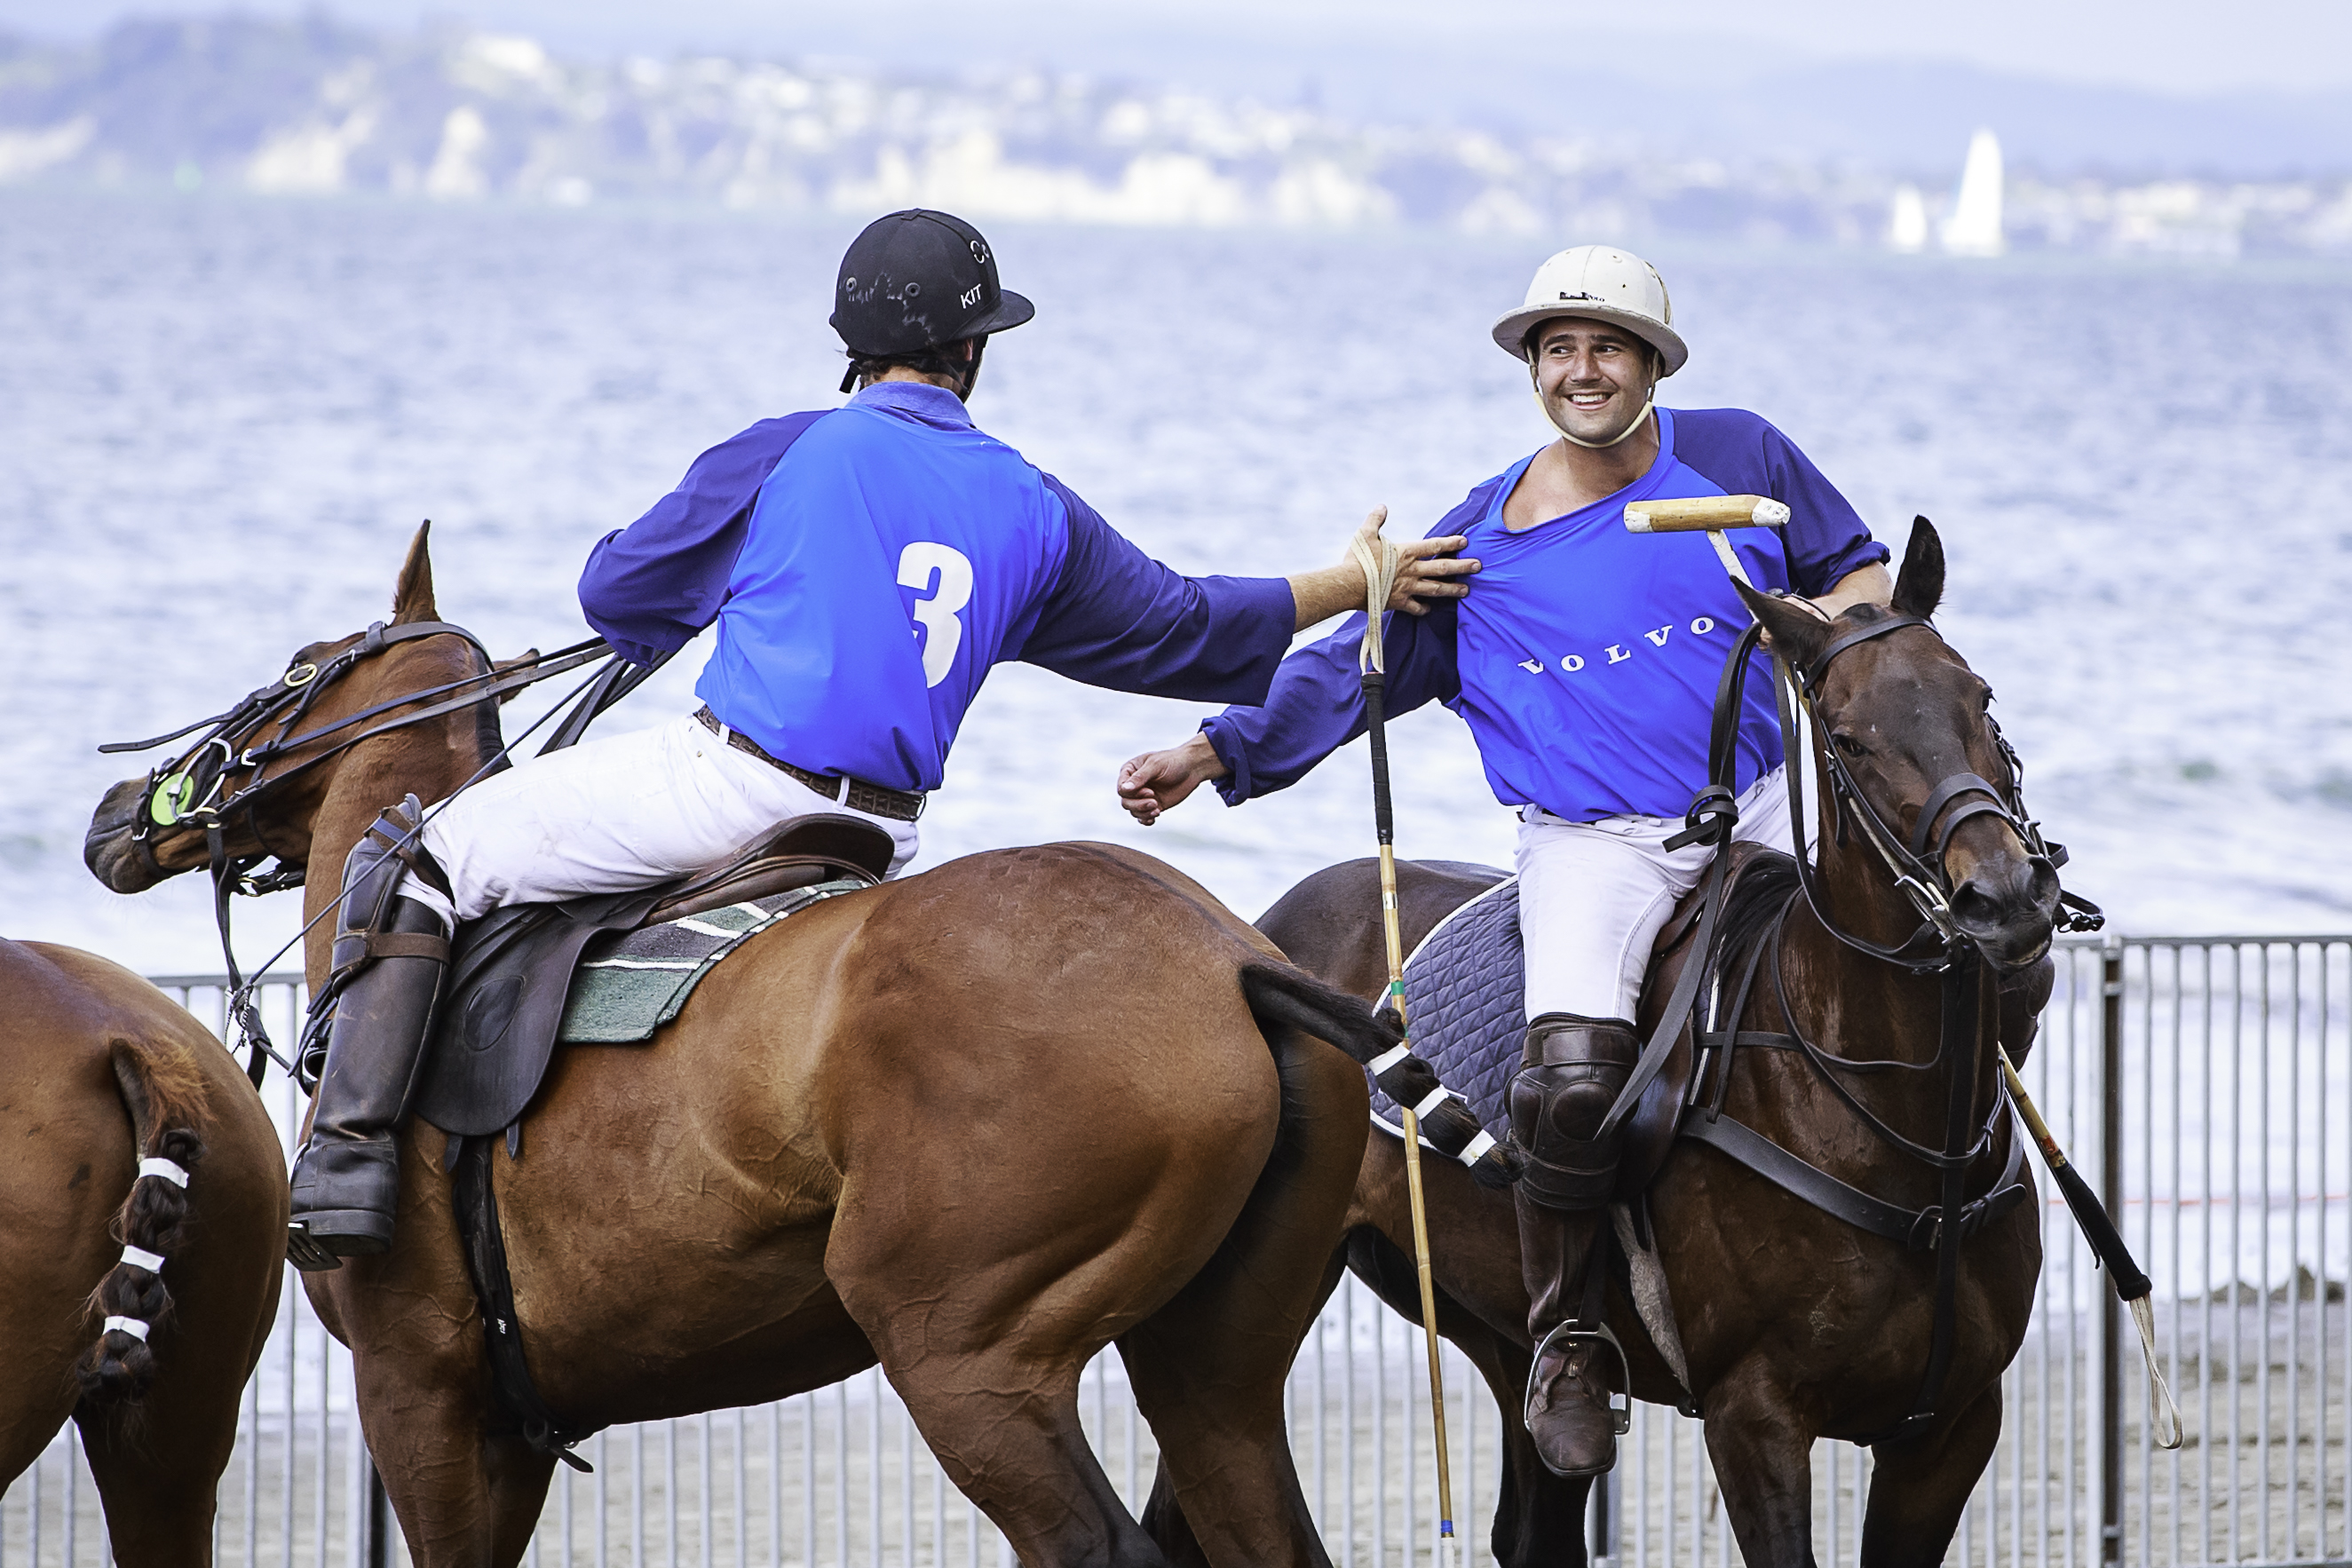 Blue team at The Polo